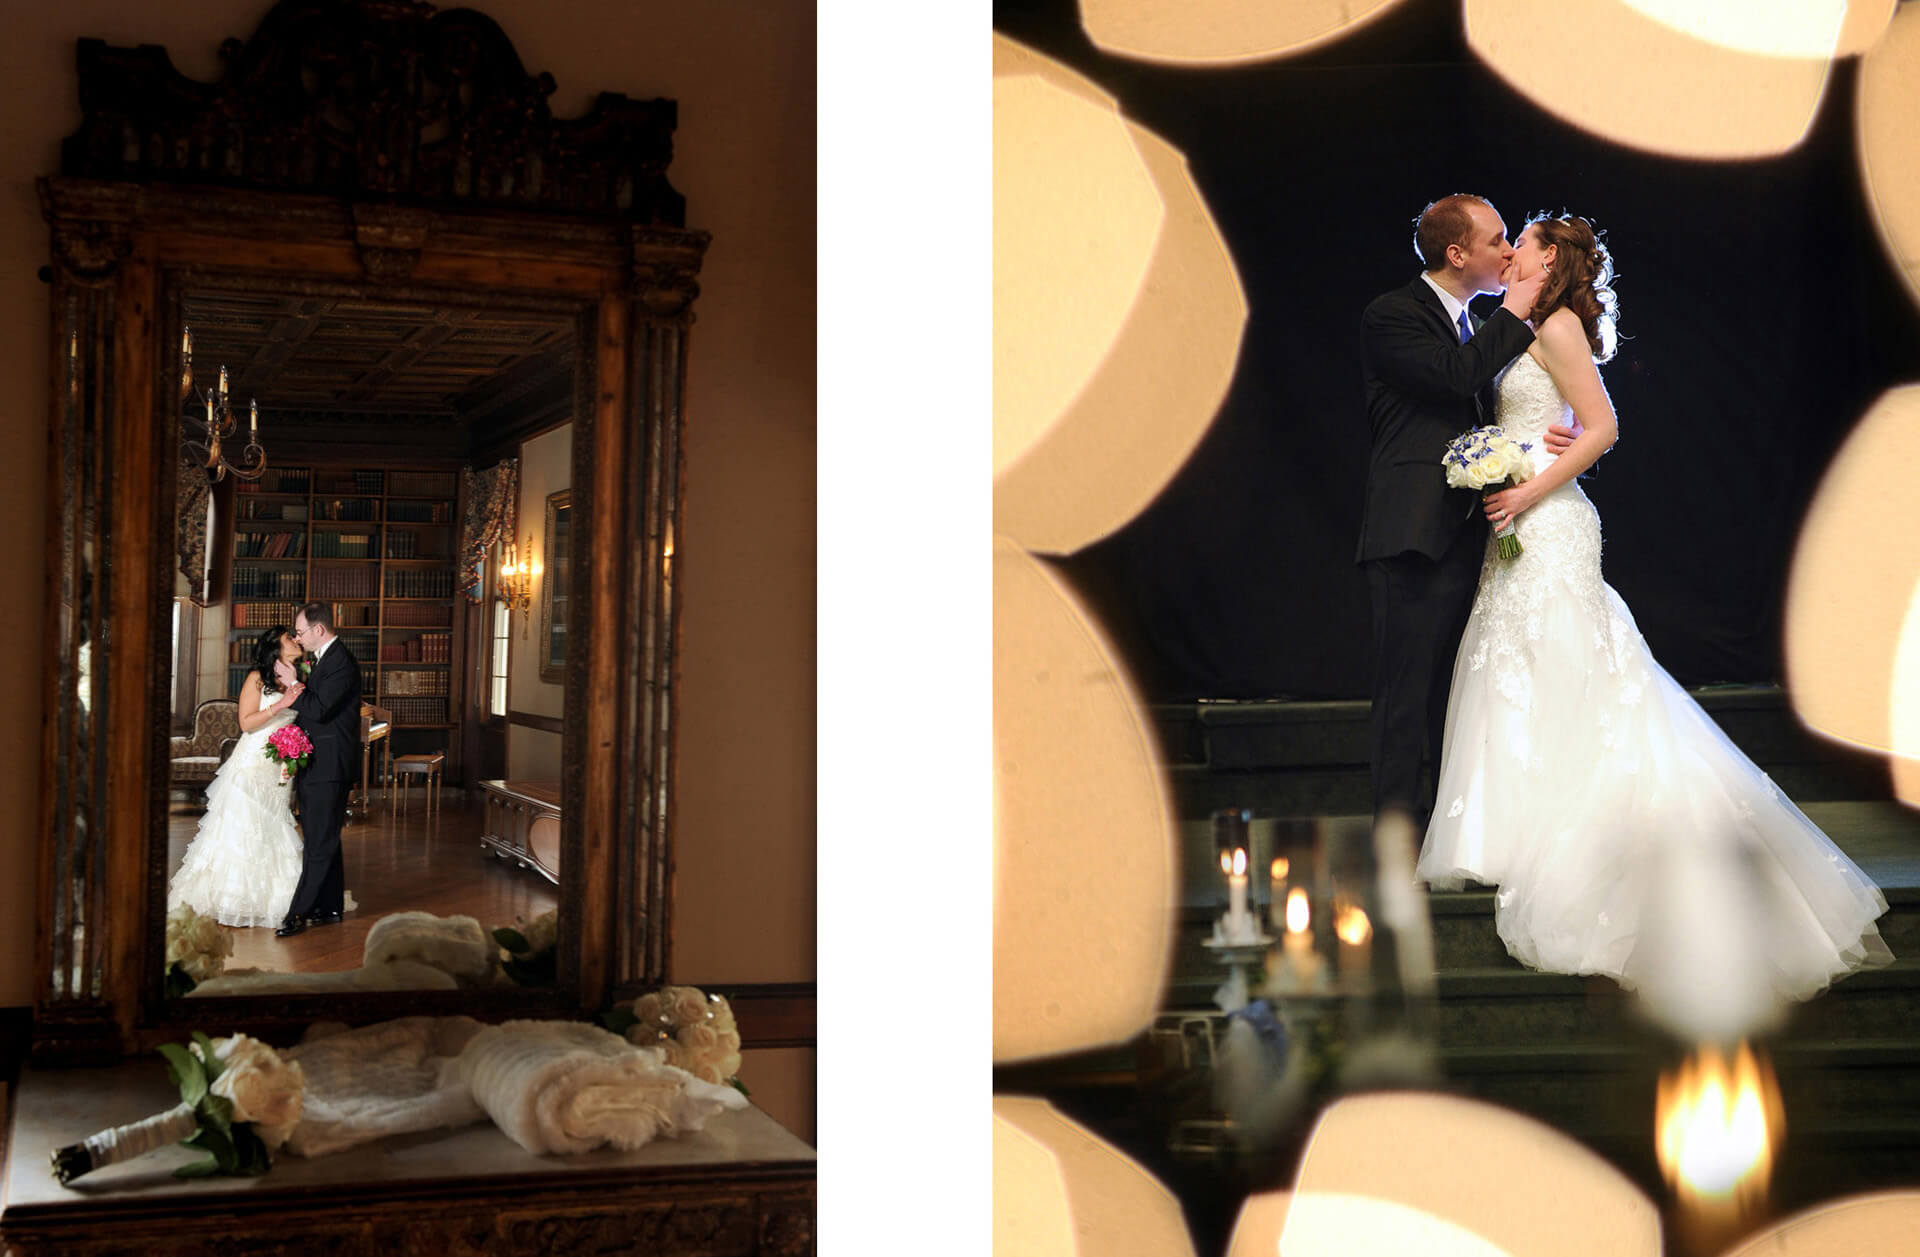 michigan wedding photographer photographs a couple's first kiss during their detroit wedding ceremony.